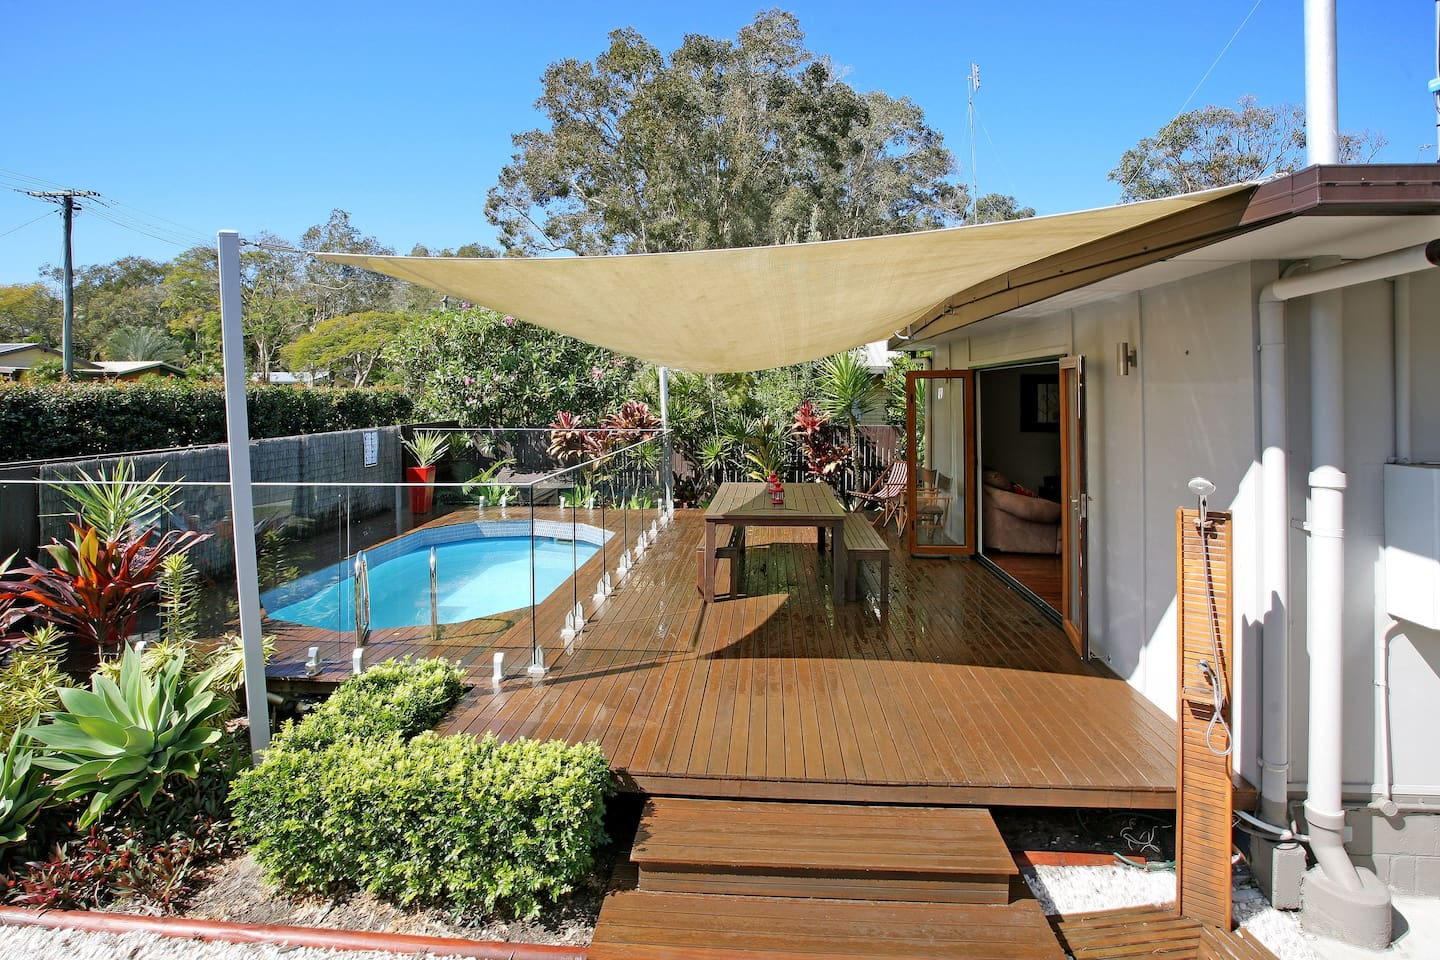 Deck and pool area with BBQ